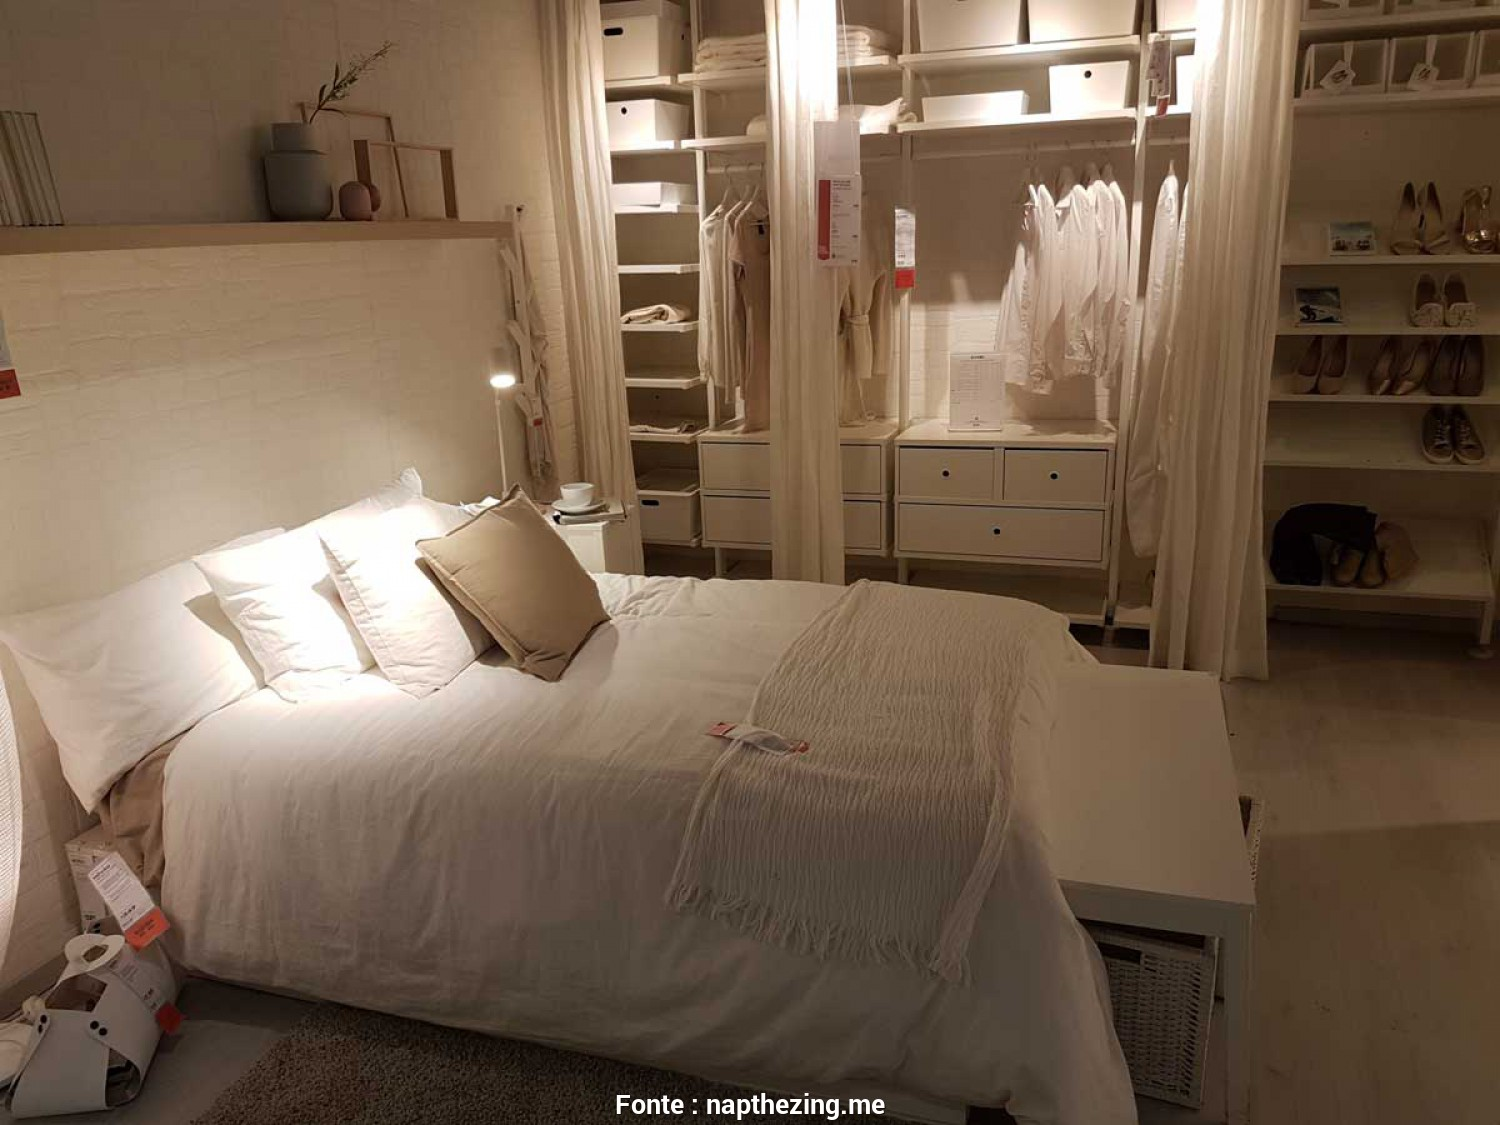 Superiore 5 Camere Da Letto Singolo Ikea - Keever For Congress